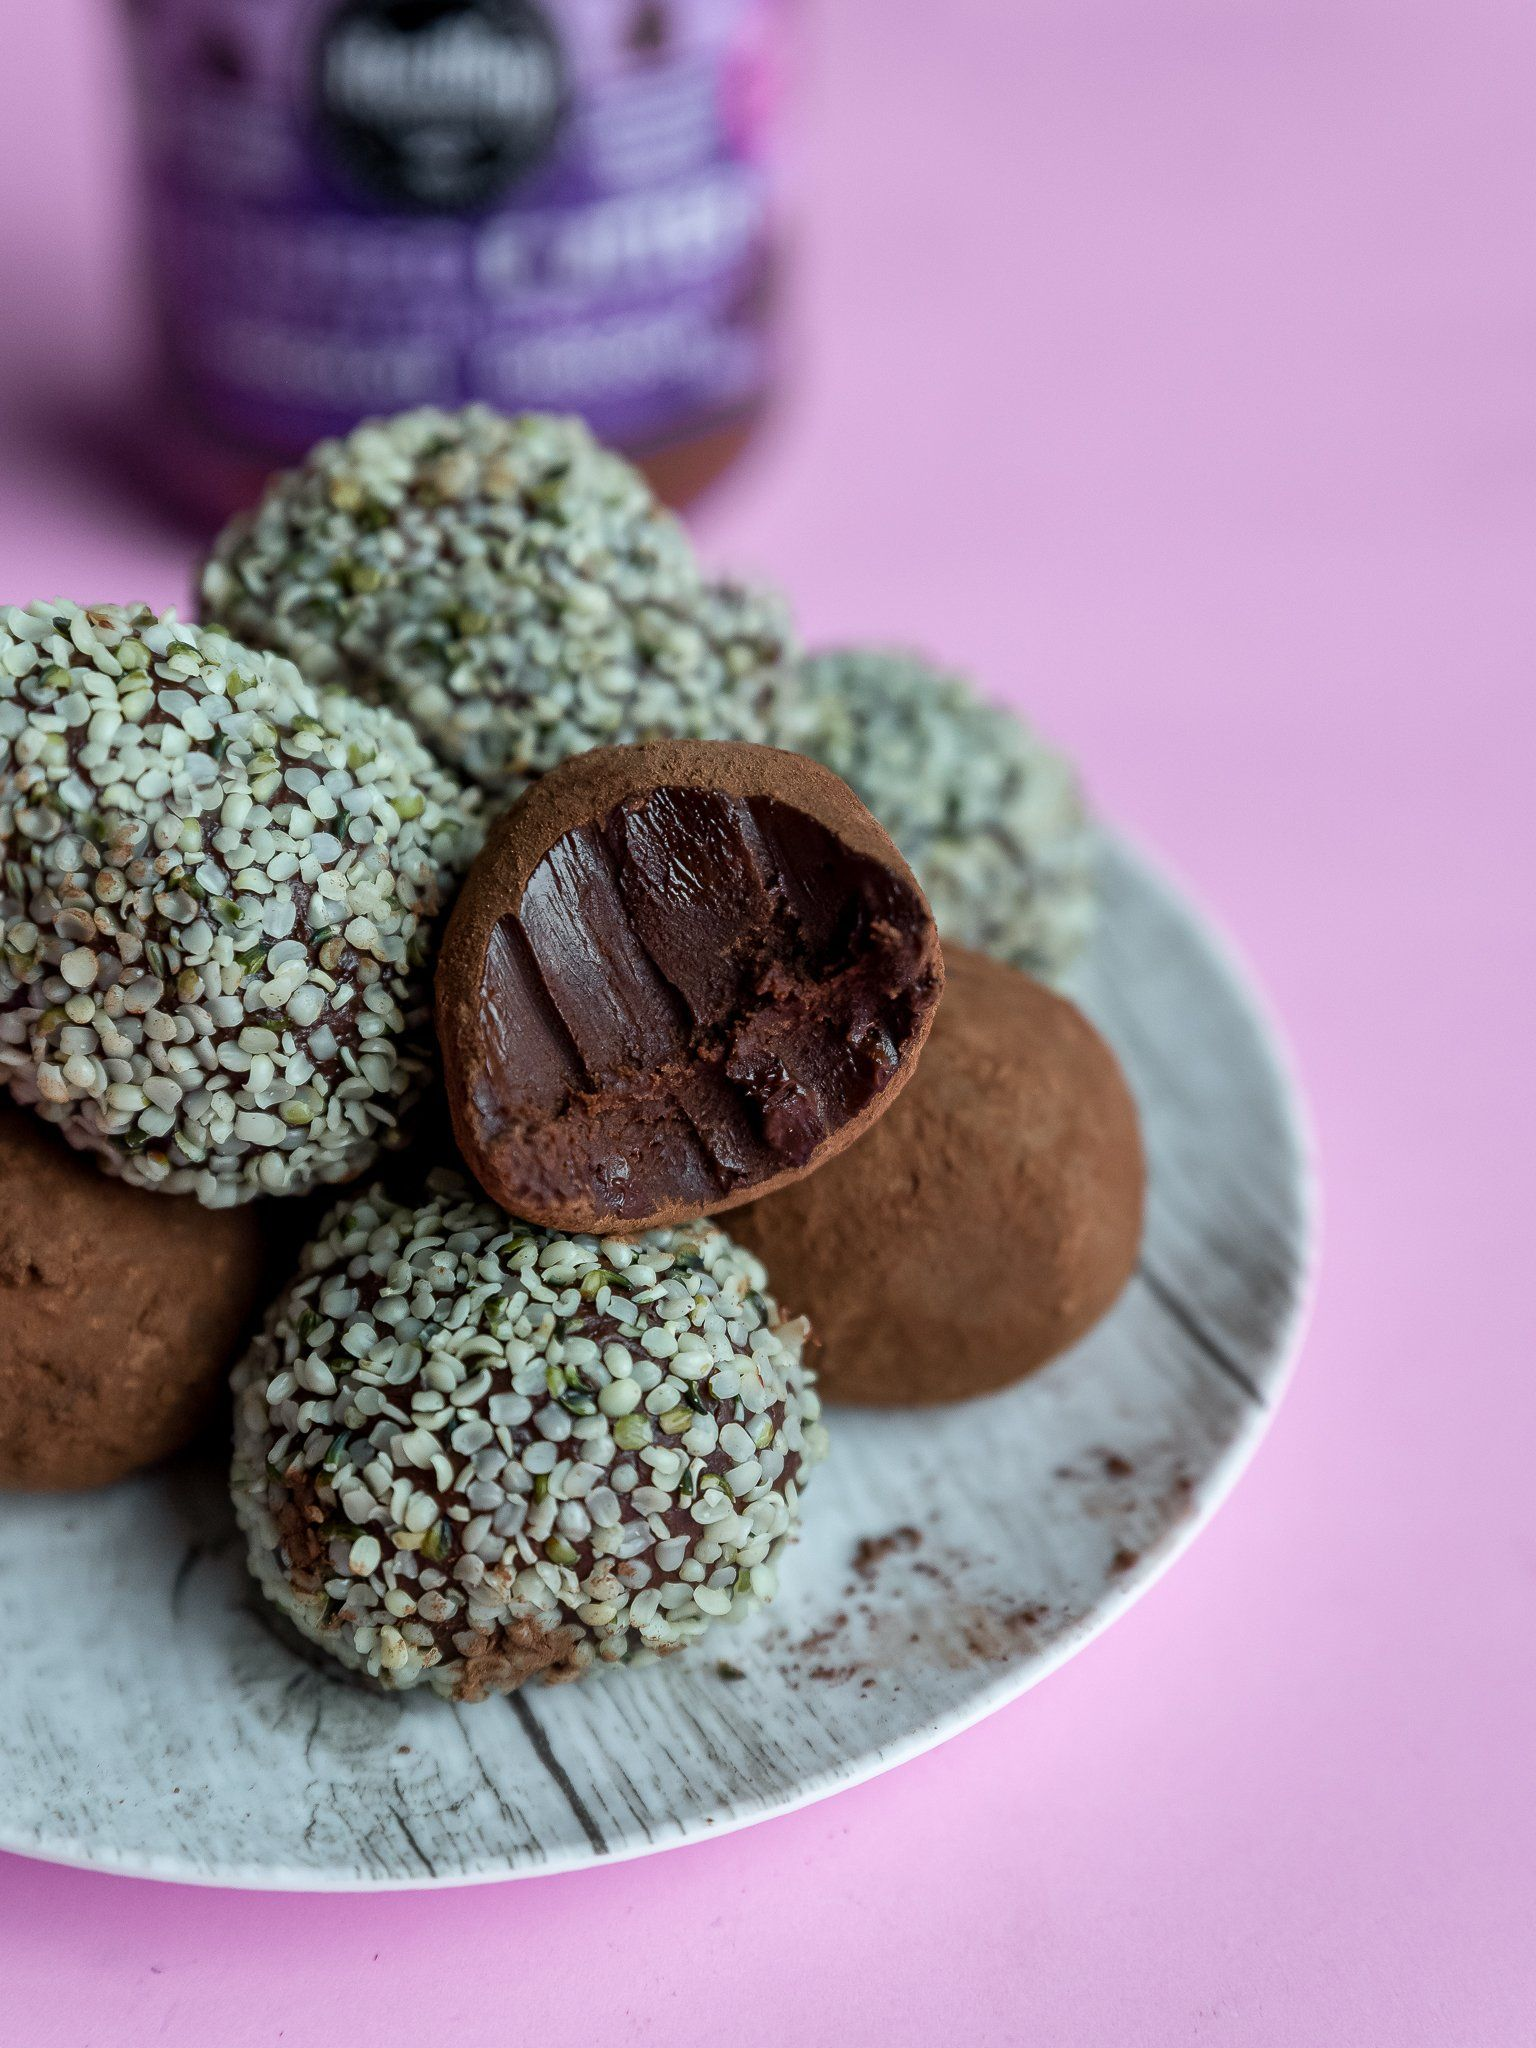 Double Chocolate Keto Truffles! (Keto, Vegan, Dairy-free, Gluten-free, Grain-Free, Allergen-friendly)